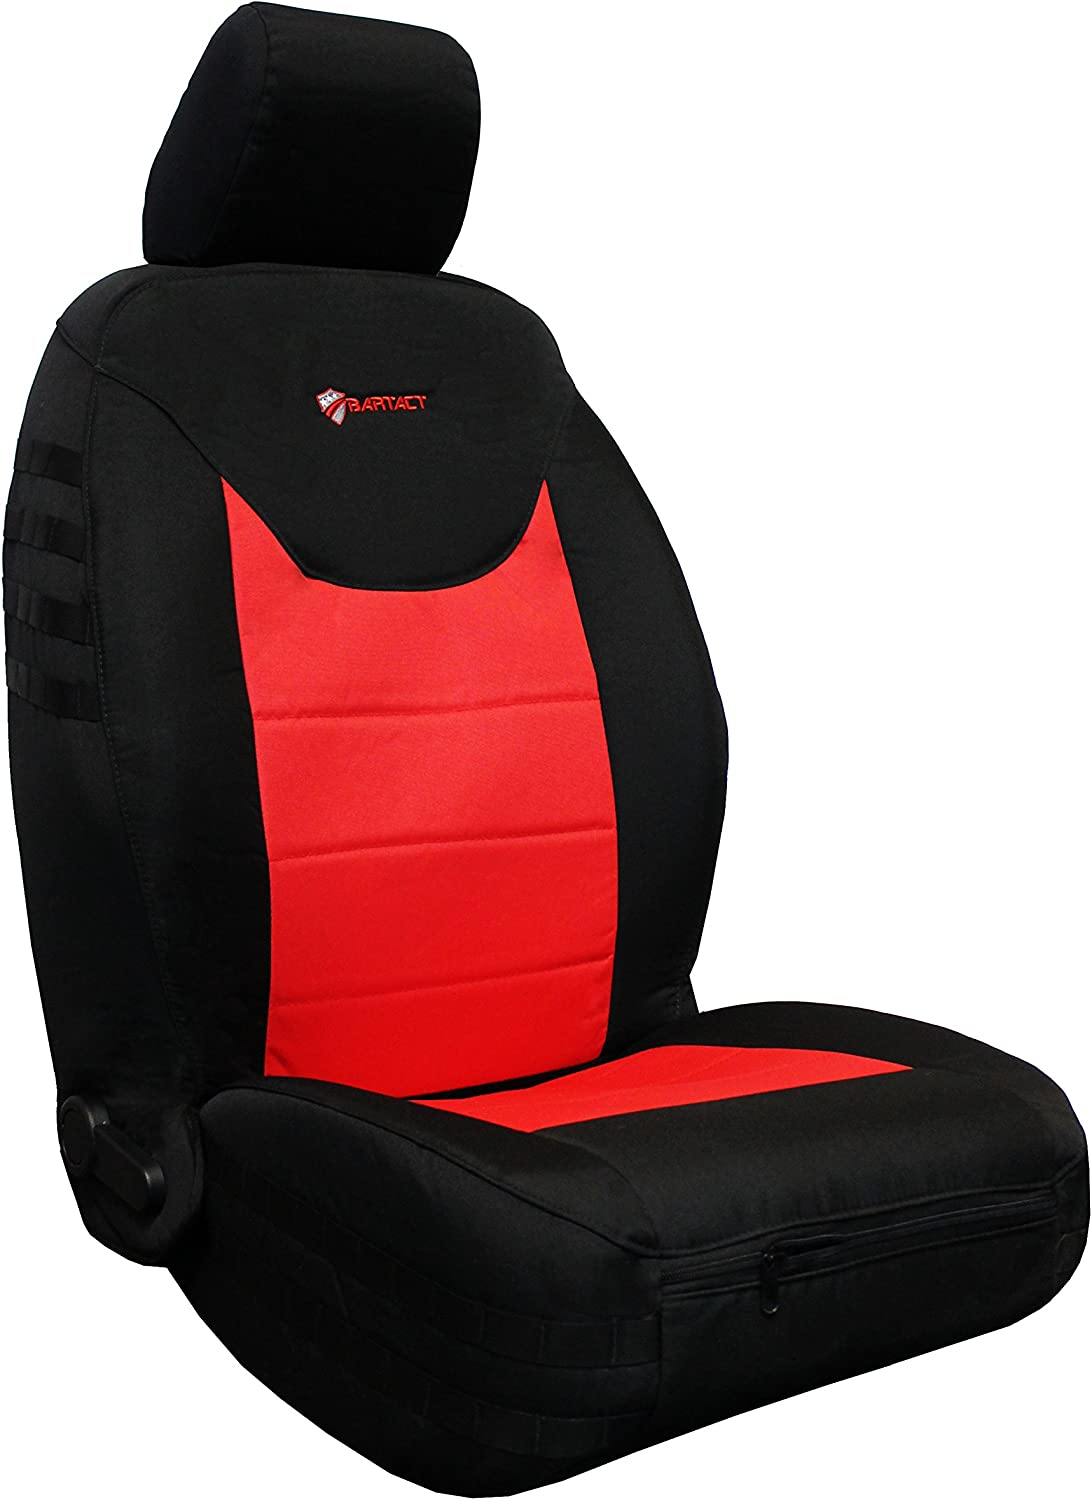 Jeep Wrangler JK and JKU Black//Red AIR Bag Compatible Bartact 2013-17 Front Seat Covers Pair